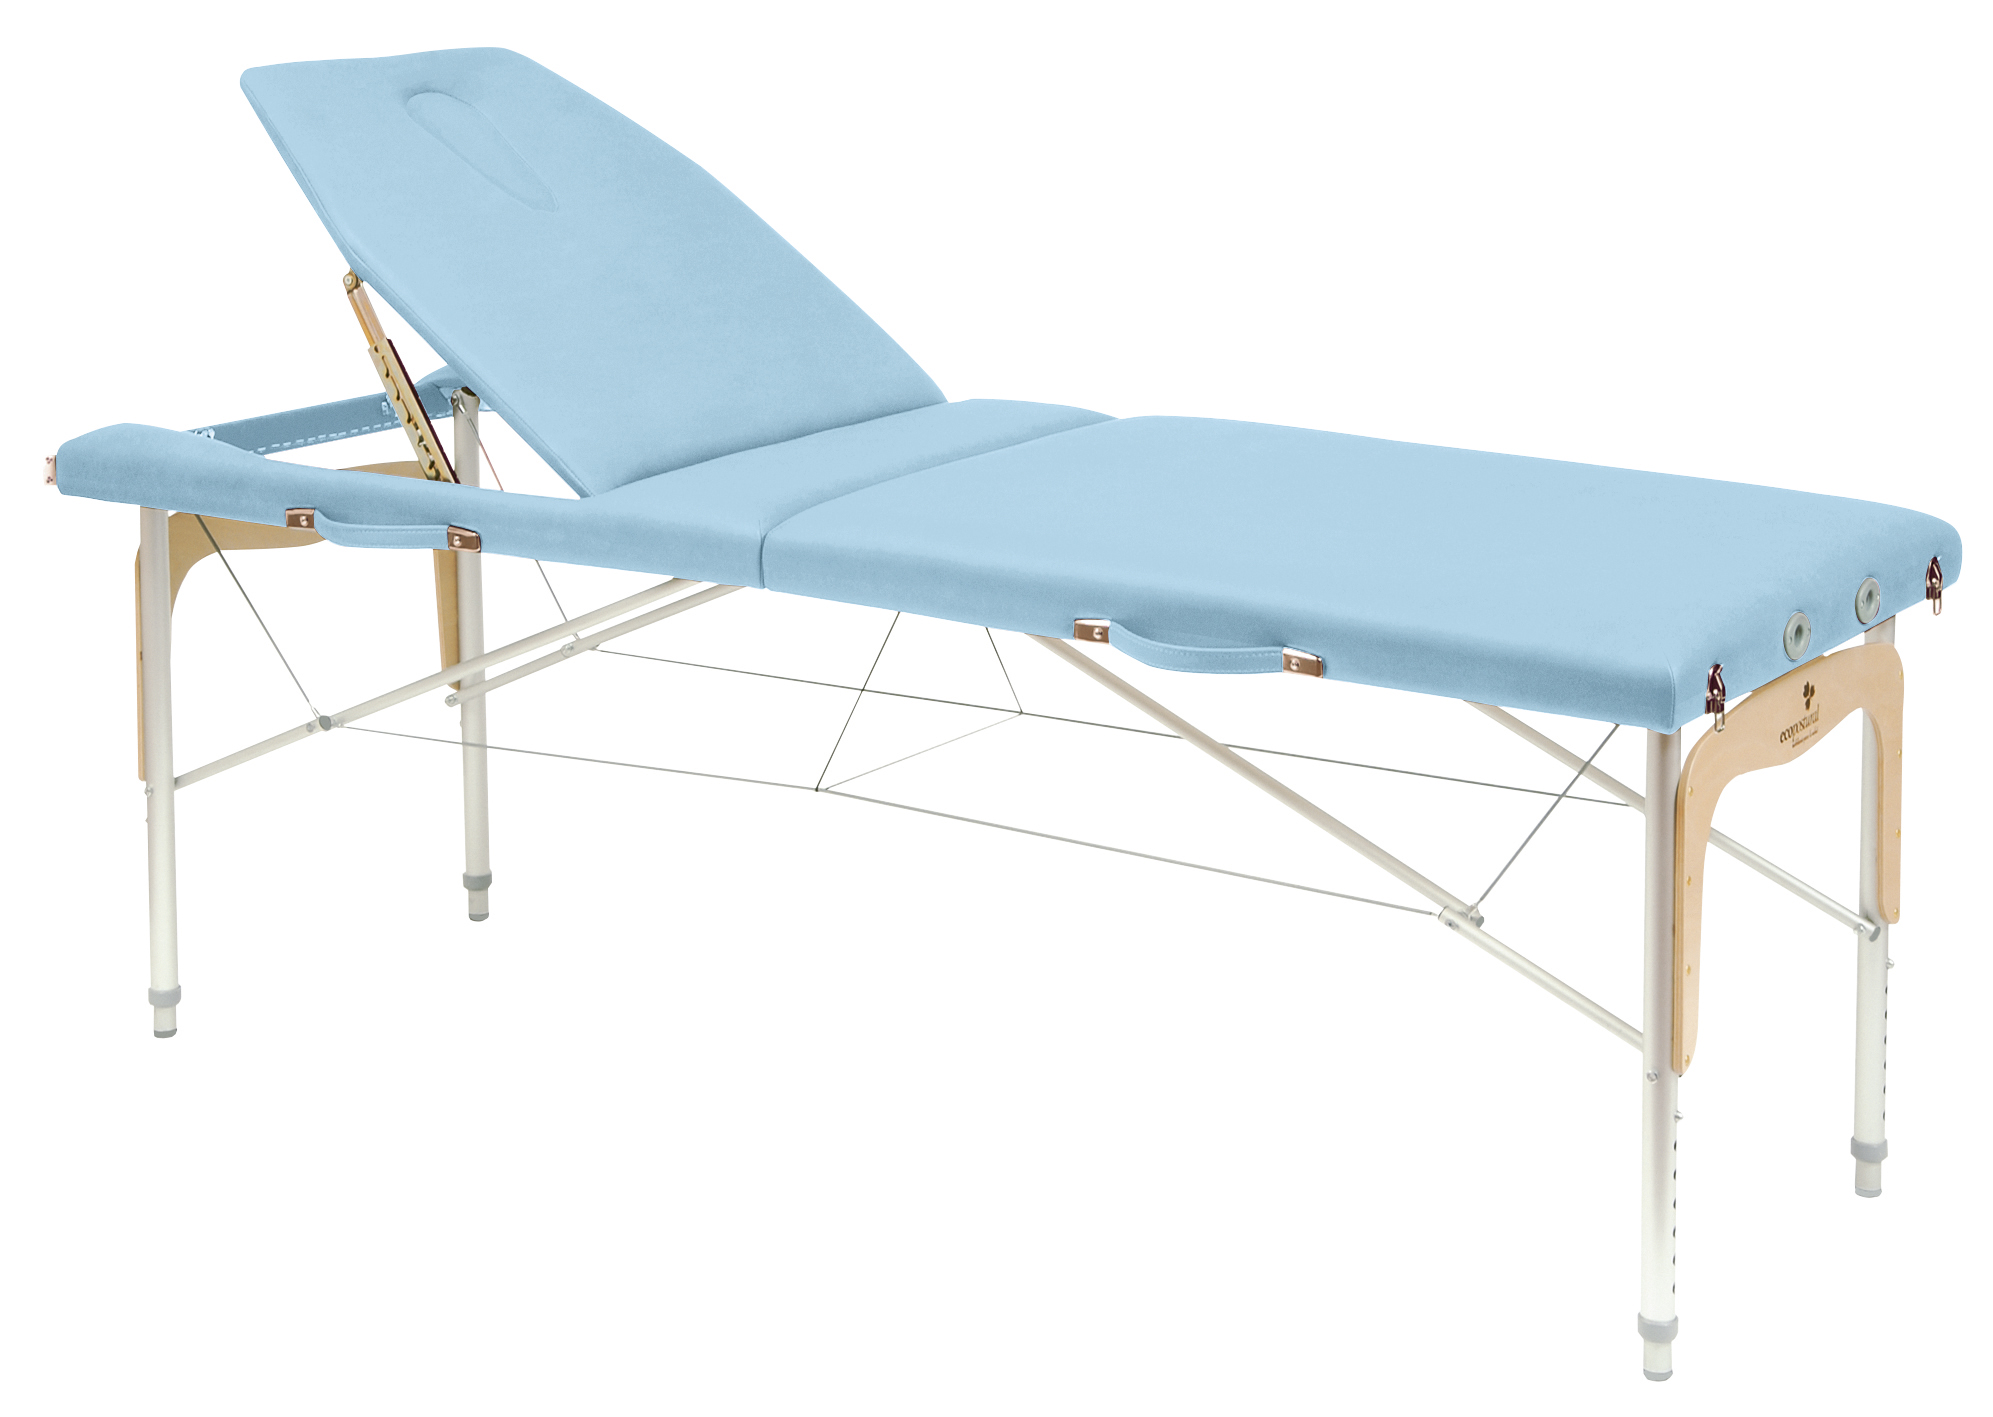 C3314 table de massage portable en aluminium